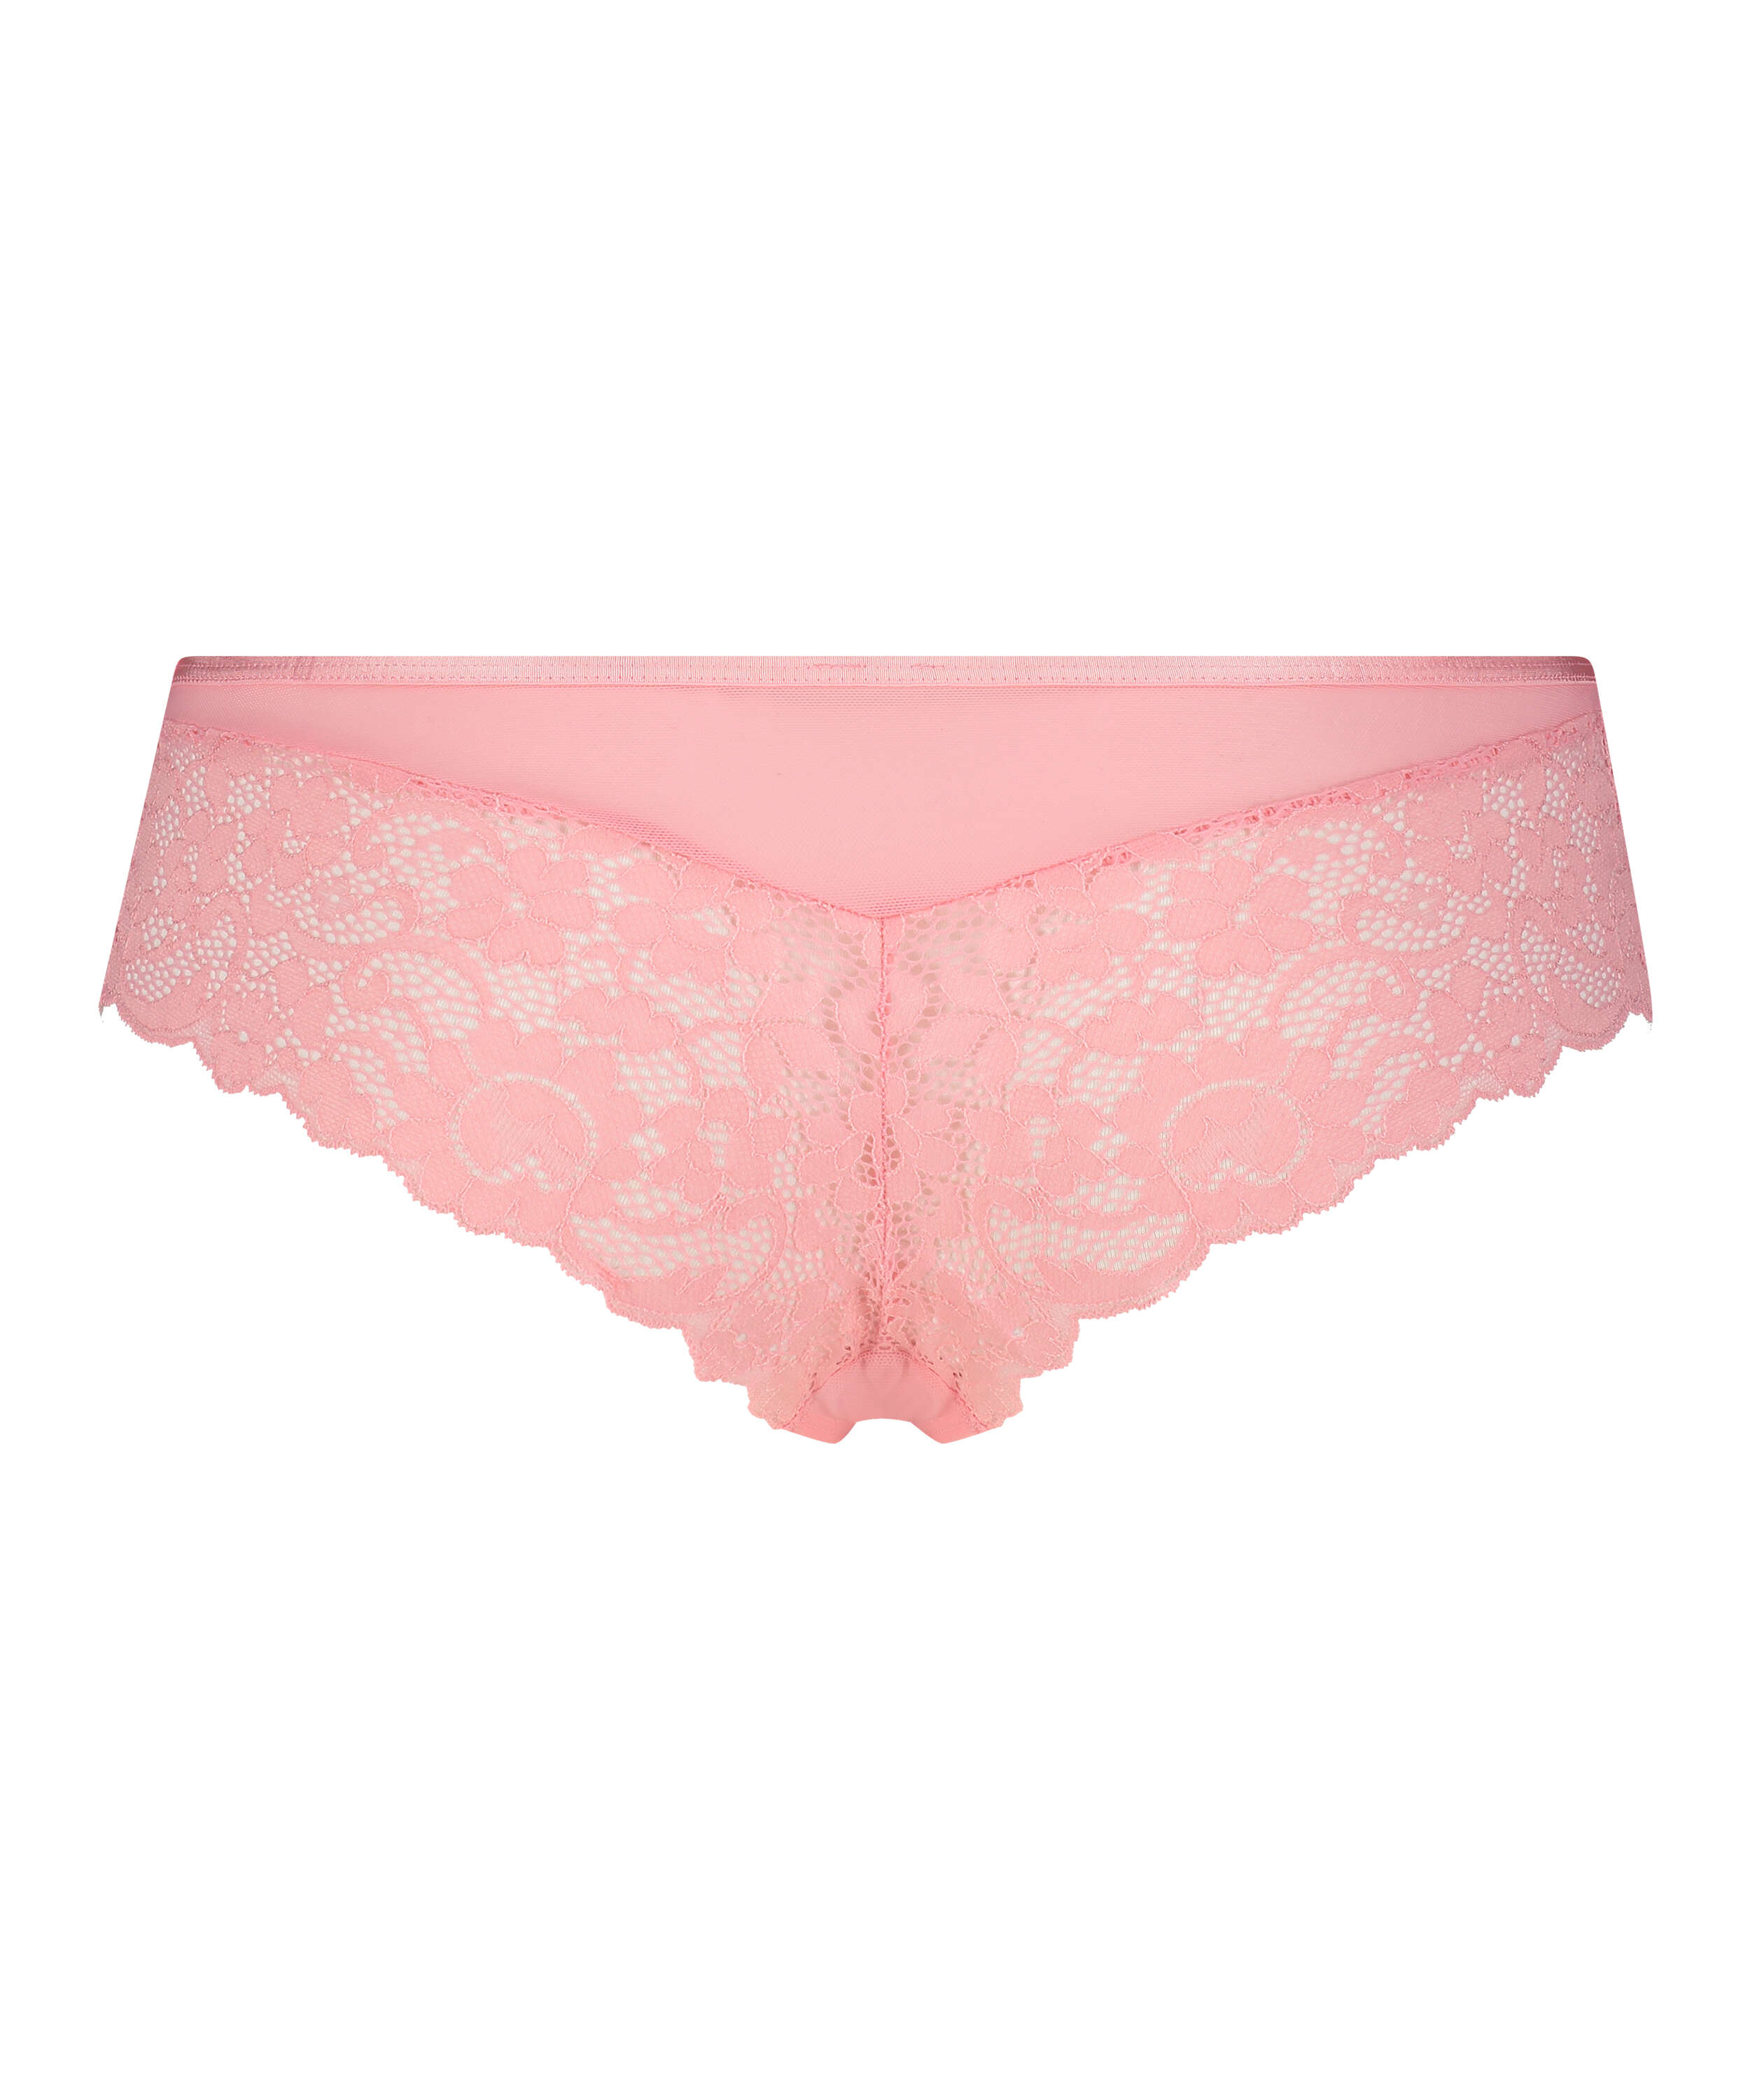 Brazilian short Mia, Roze, main